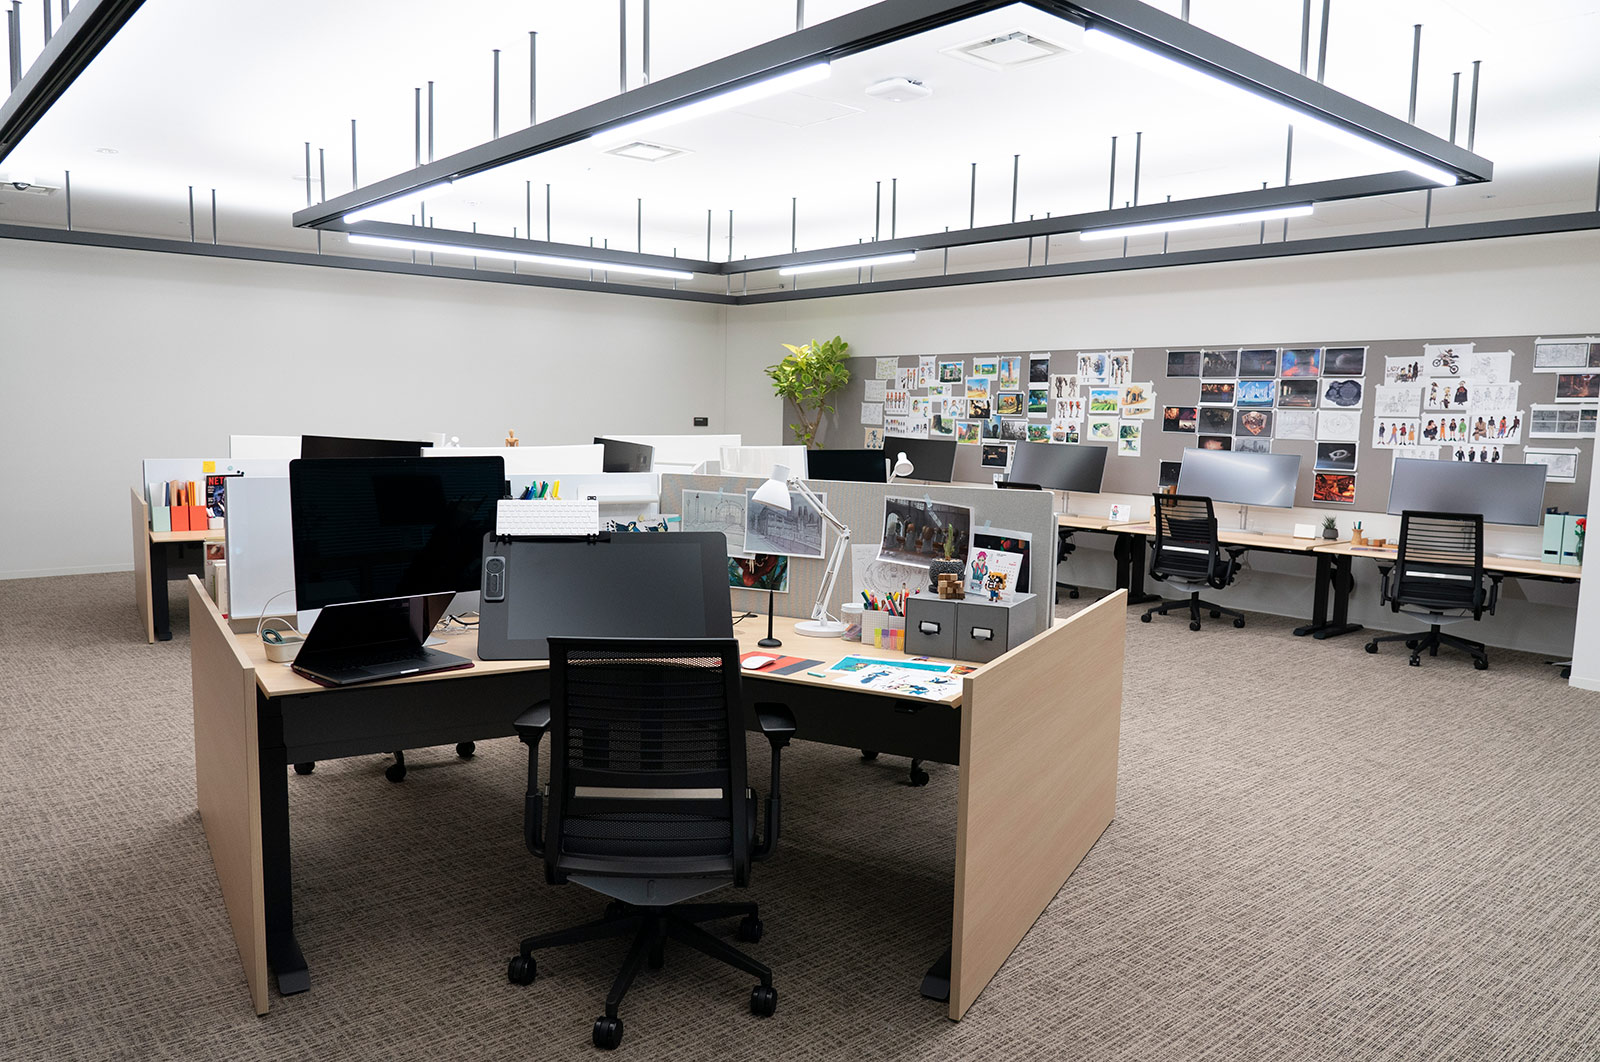 <strong>Designers' Garage:</strong> This space seats up to 10 designers and artists. At launch, designers will focus on creating conceptual art at the early developmental stages of an anime series or film to ensure creative staff is aligned on the look and feel of a project.